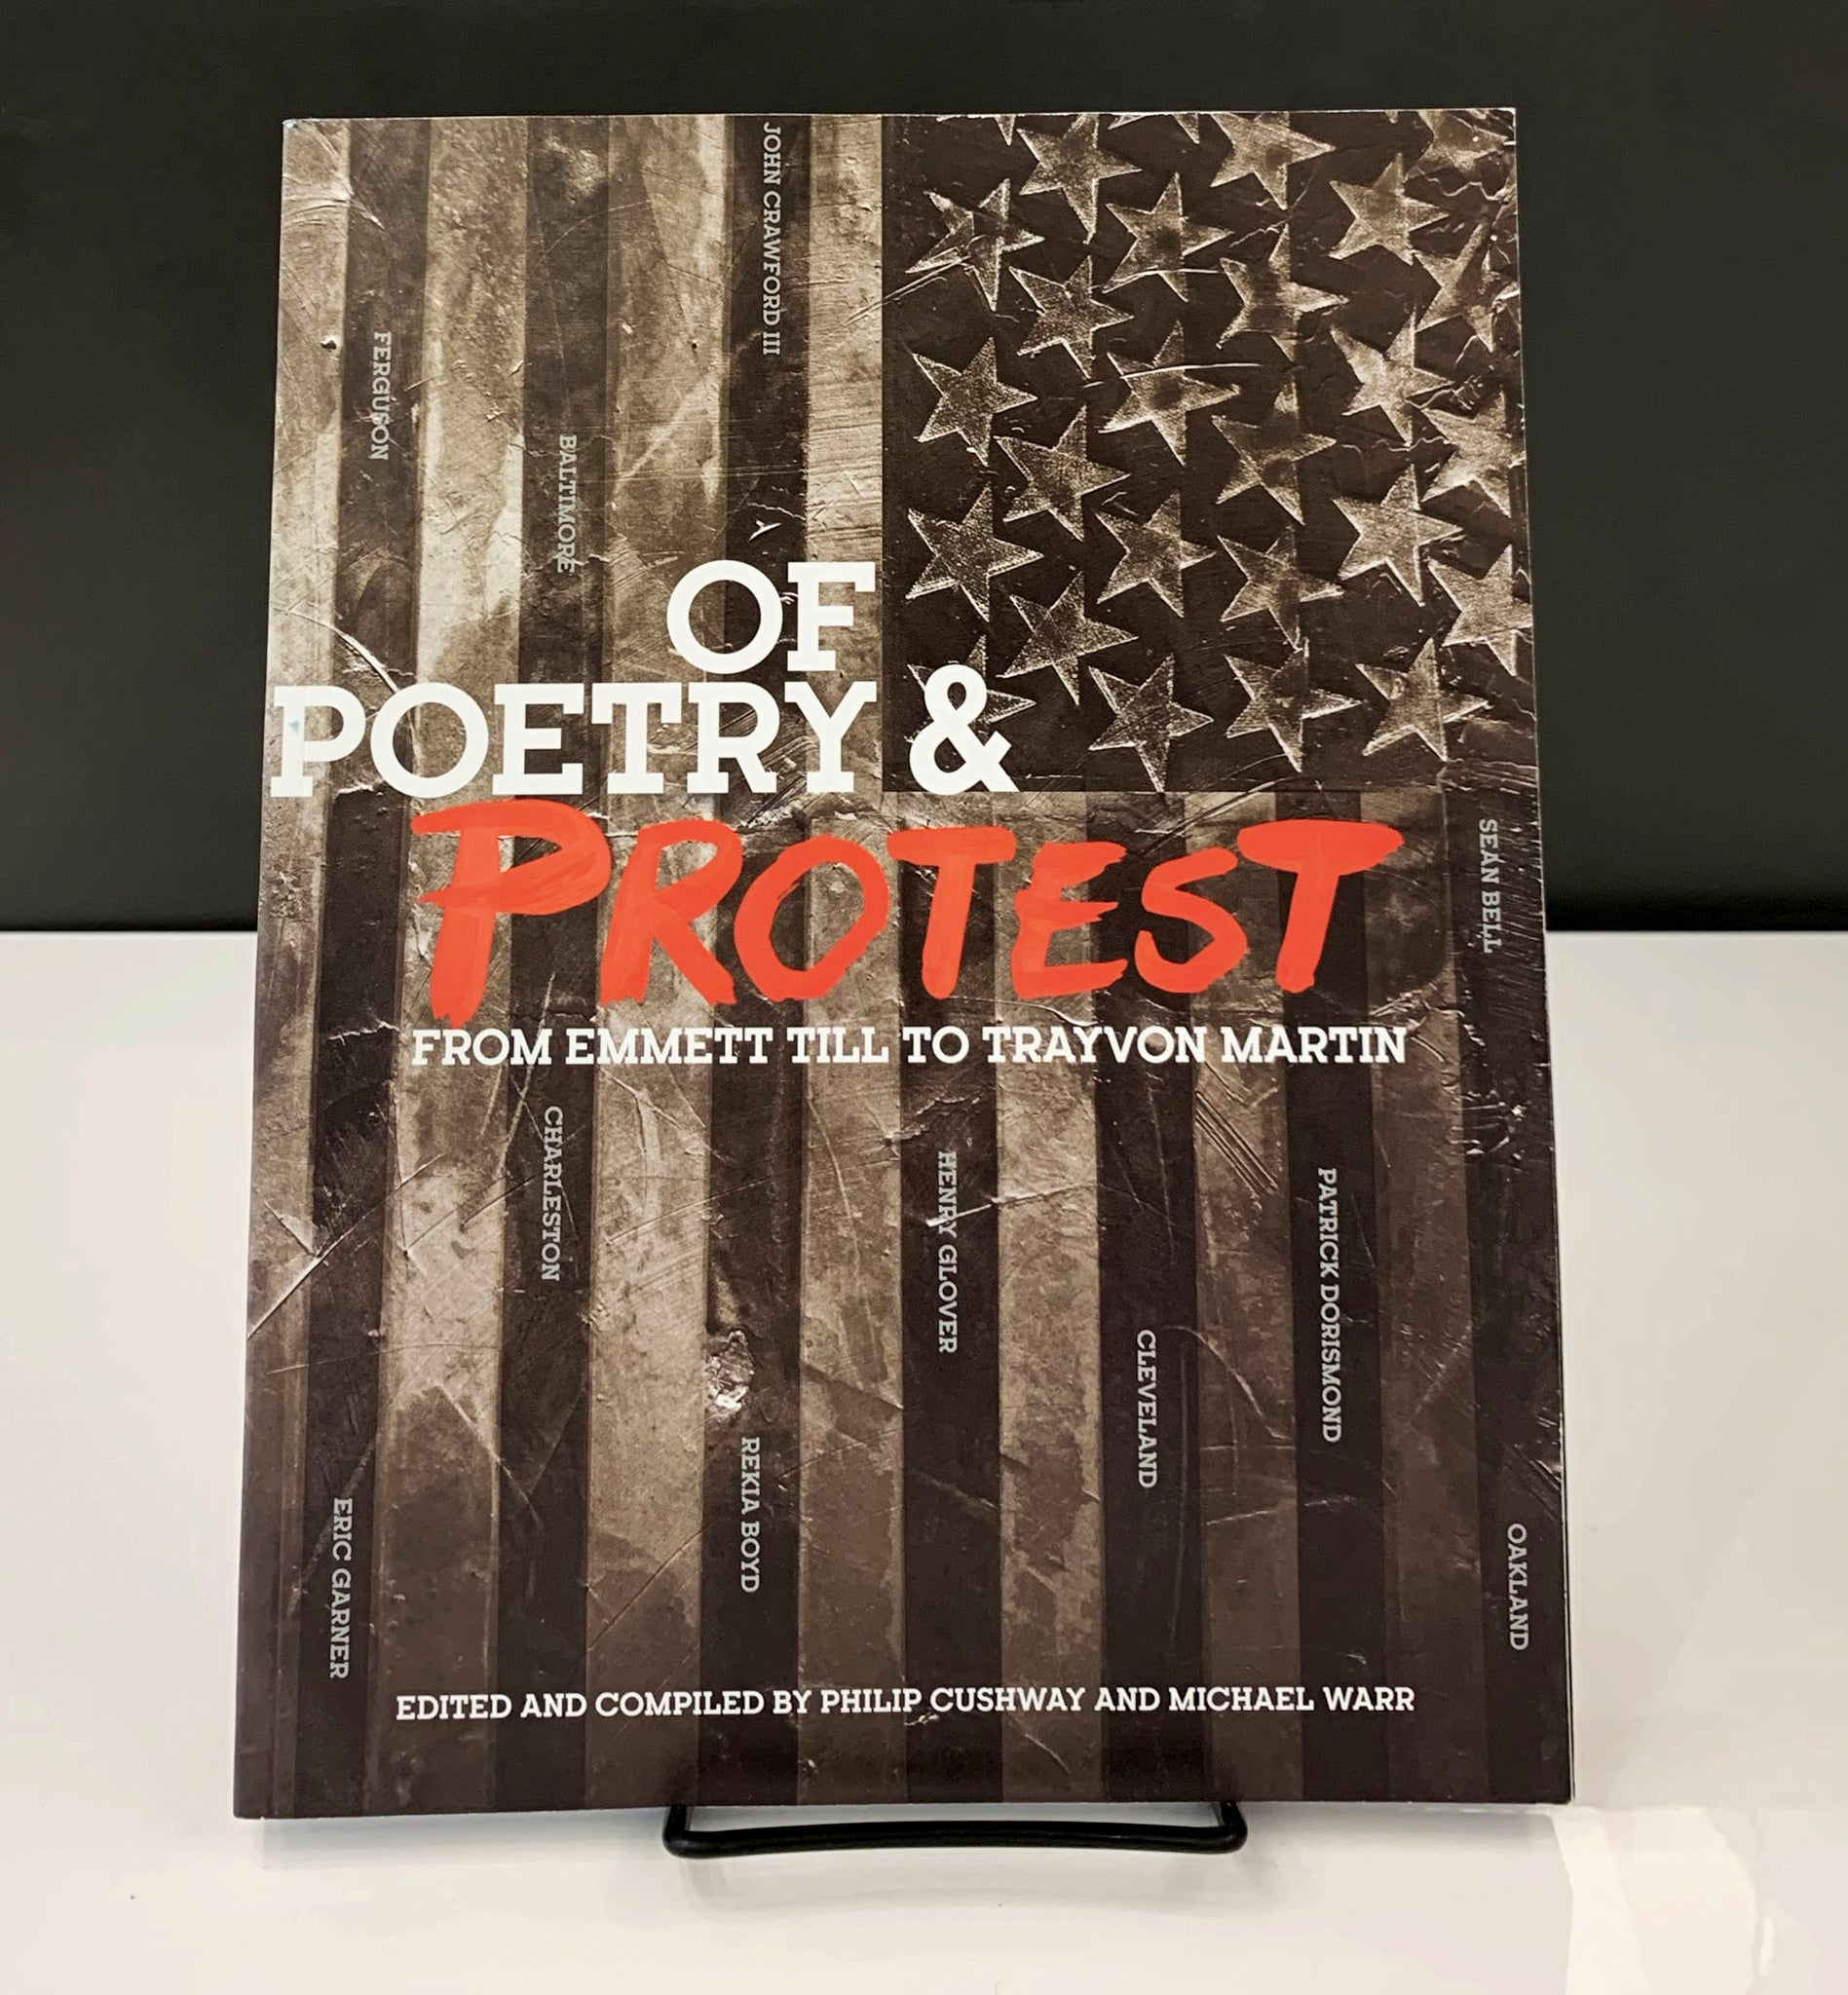 Of Poetry And Protest: From Emmett Till to Trayvon Martin (poetry editor: Michael Warr)